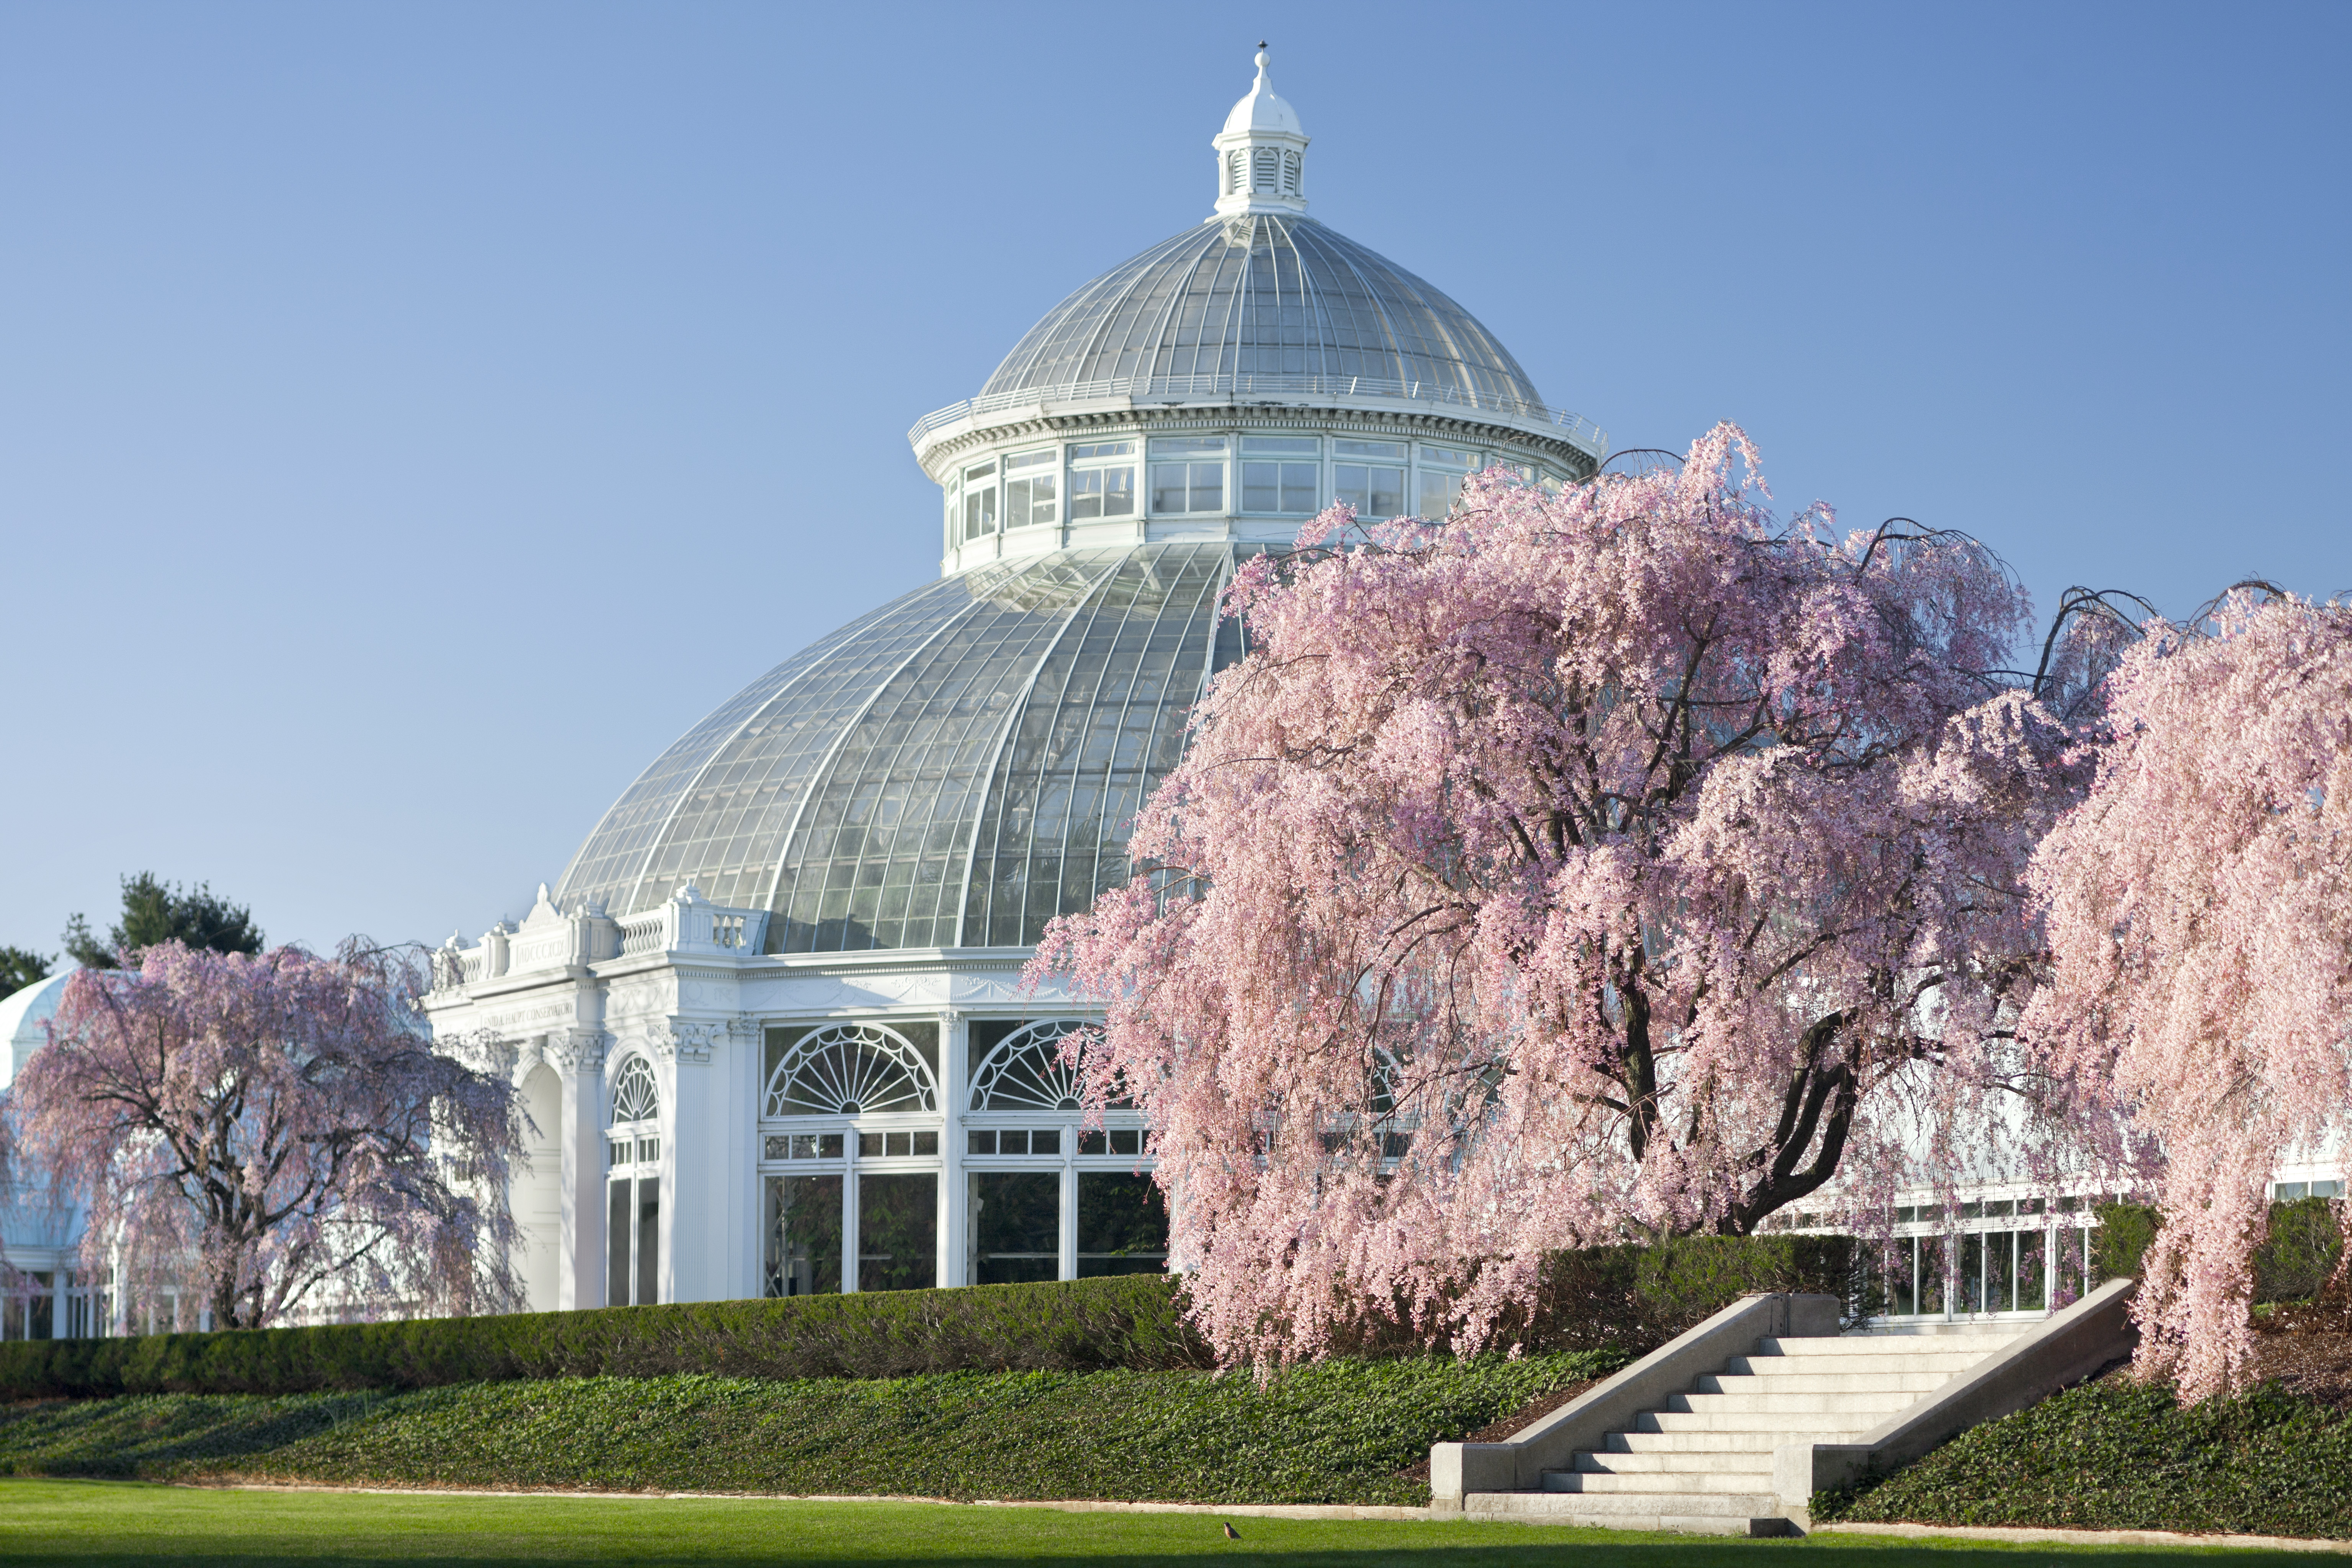 Enid A. Haupt Conservatory at The New York Botanical Garden